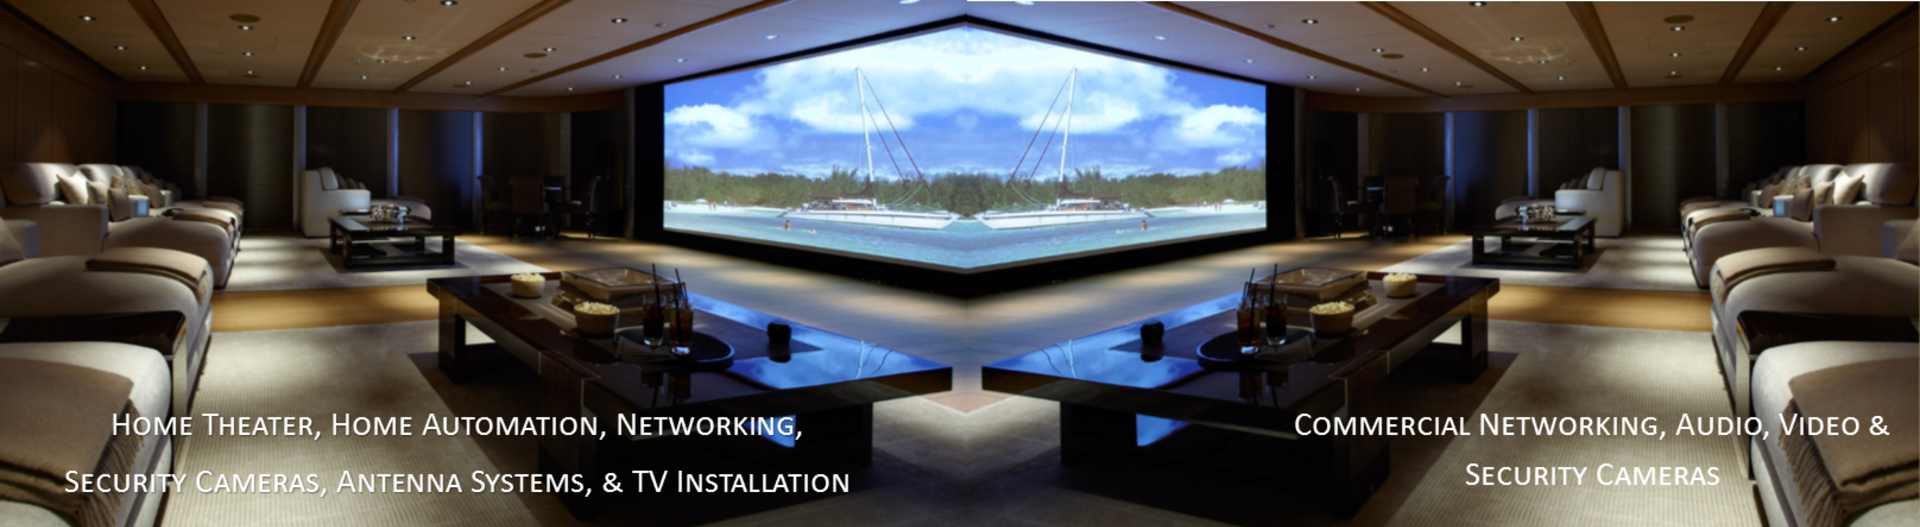 Home Theater Installation Sound By Design How To Install System Commercial